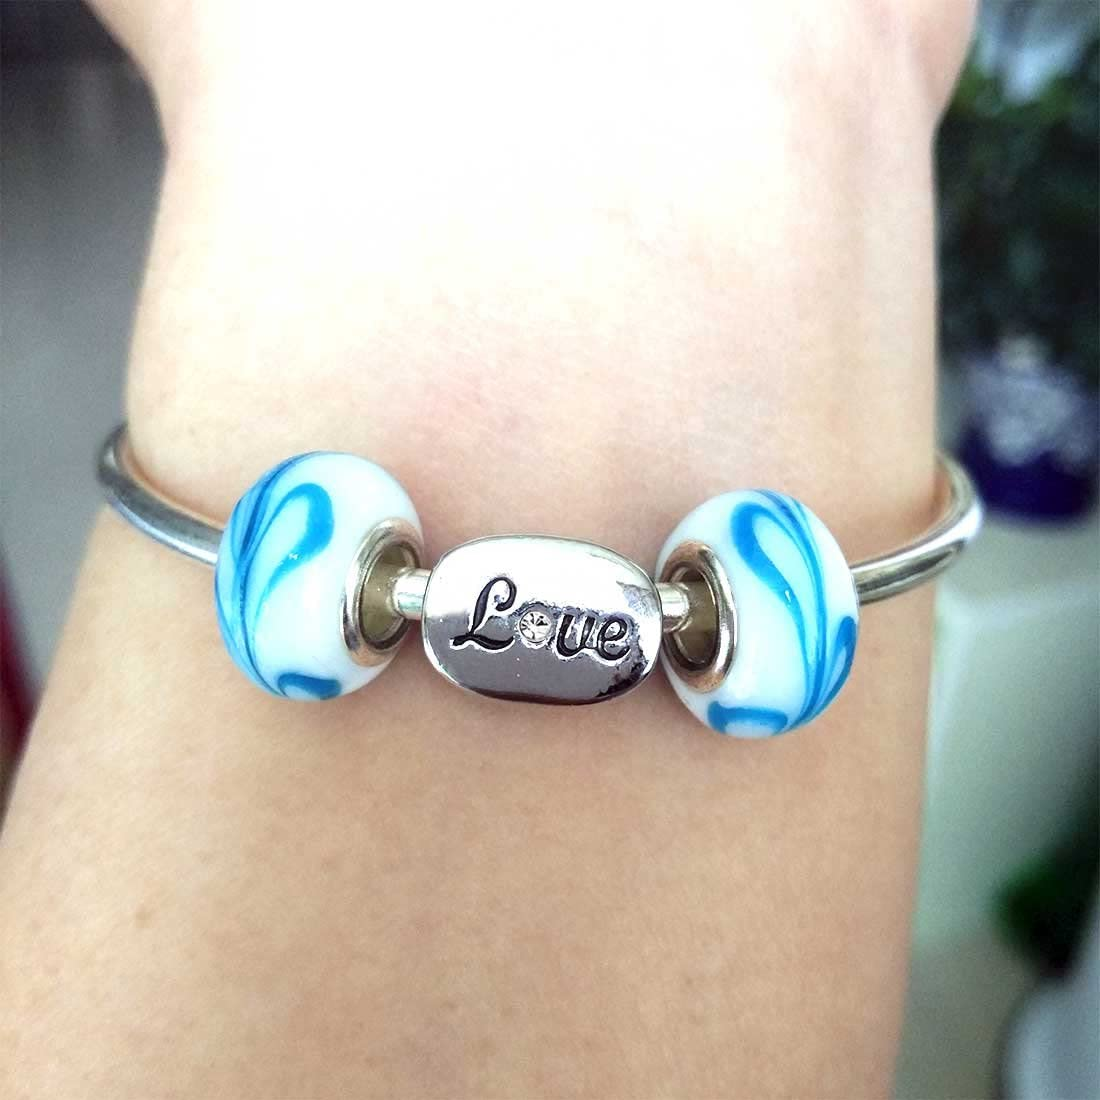 Love Oval Bead Charm Bracelets GiftJewelryShop Silver Plated Blue Letter P Photo White Crystal April Birthstone